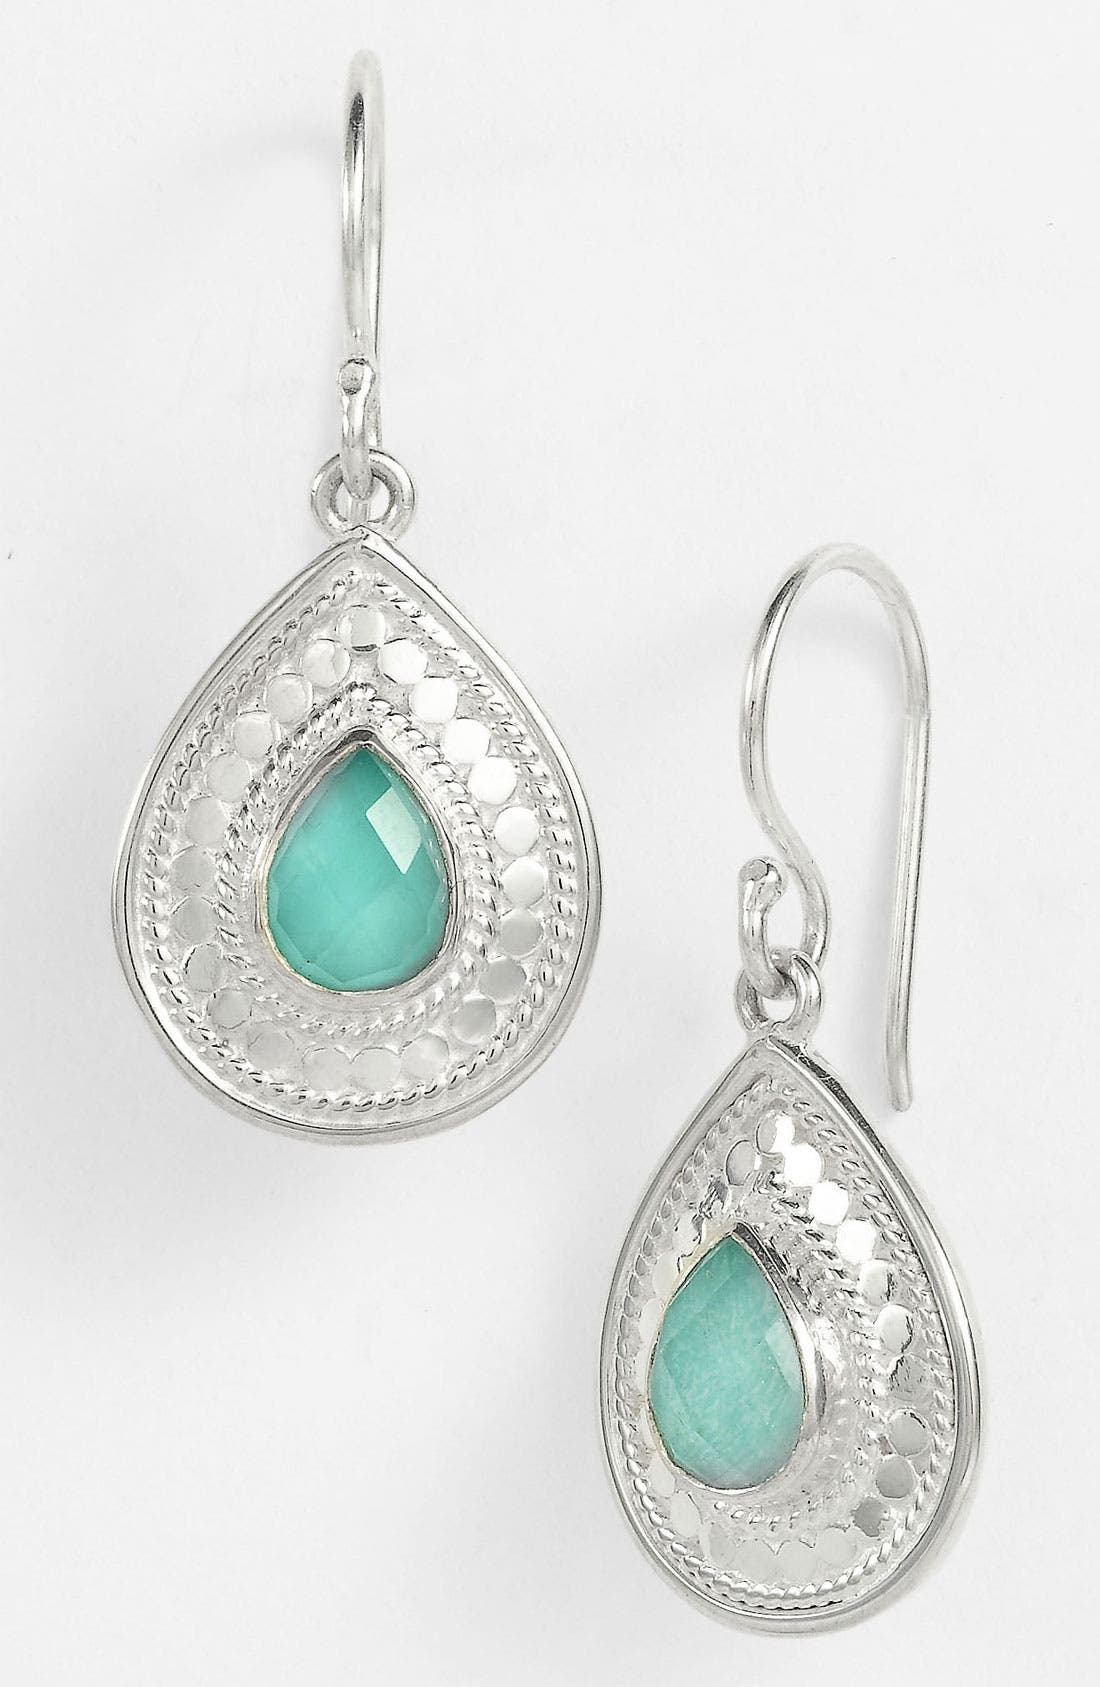 Alternate Image 1 Selected - Anna Beck 'Gili' Teardrop Earrings